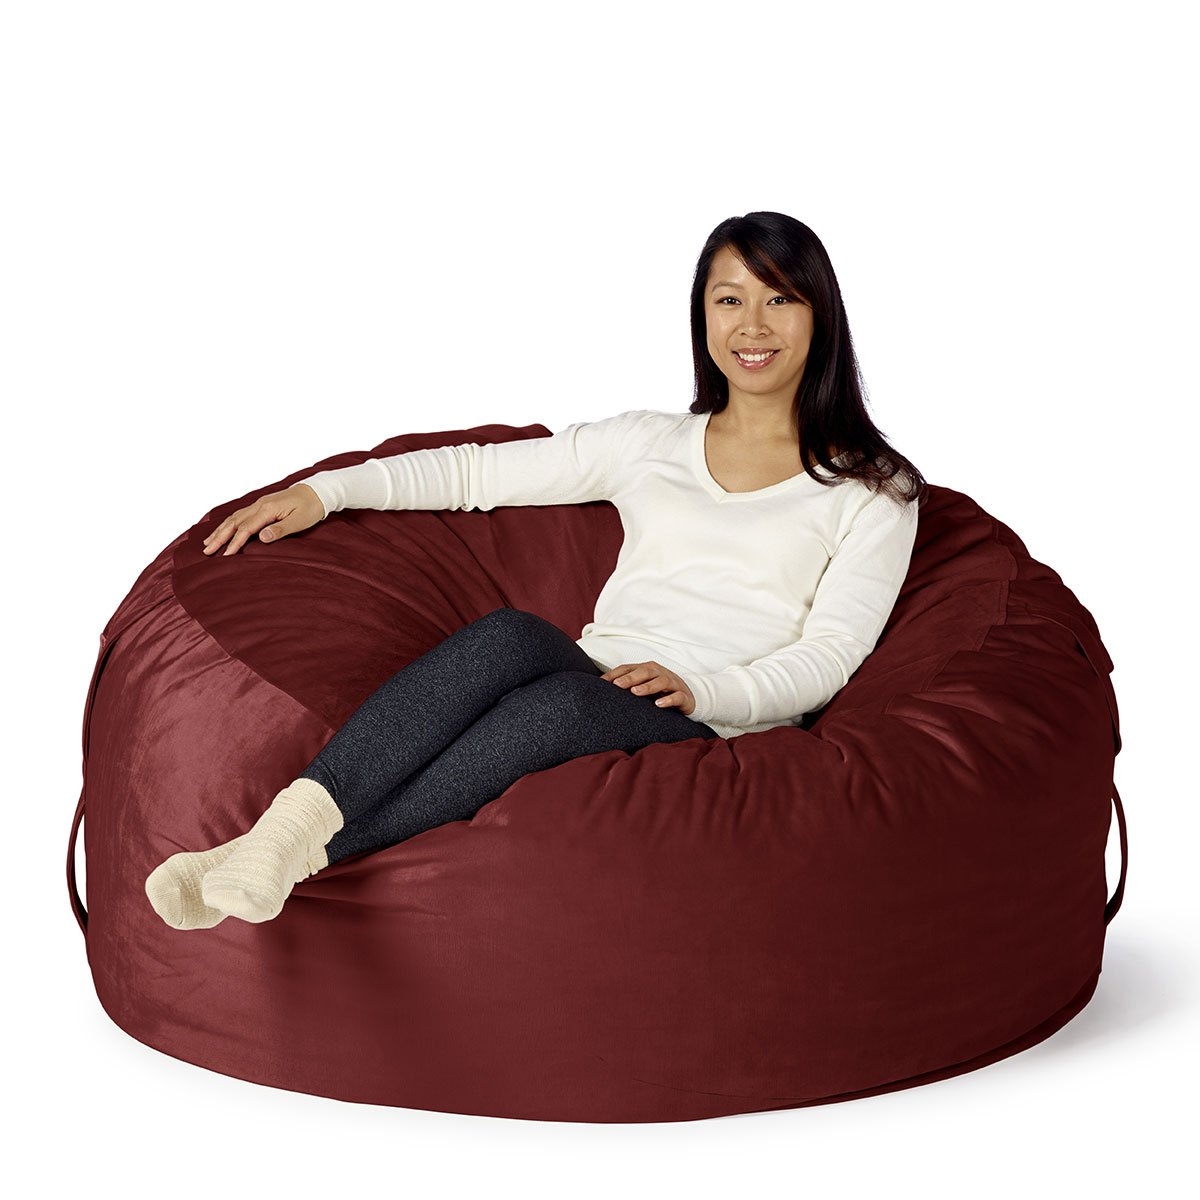 Amazon Take Ten Large 50 Luxury Bean Bag Chair Multiple Colors Seats 1 To 2 Adults Durable And Comfortable Kitchen Dining